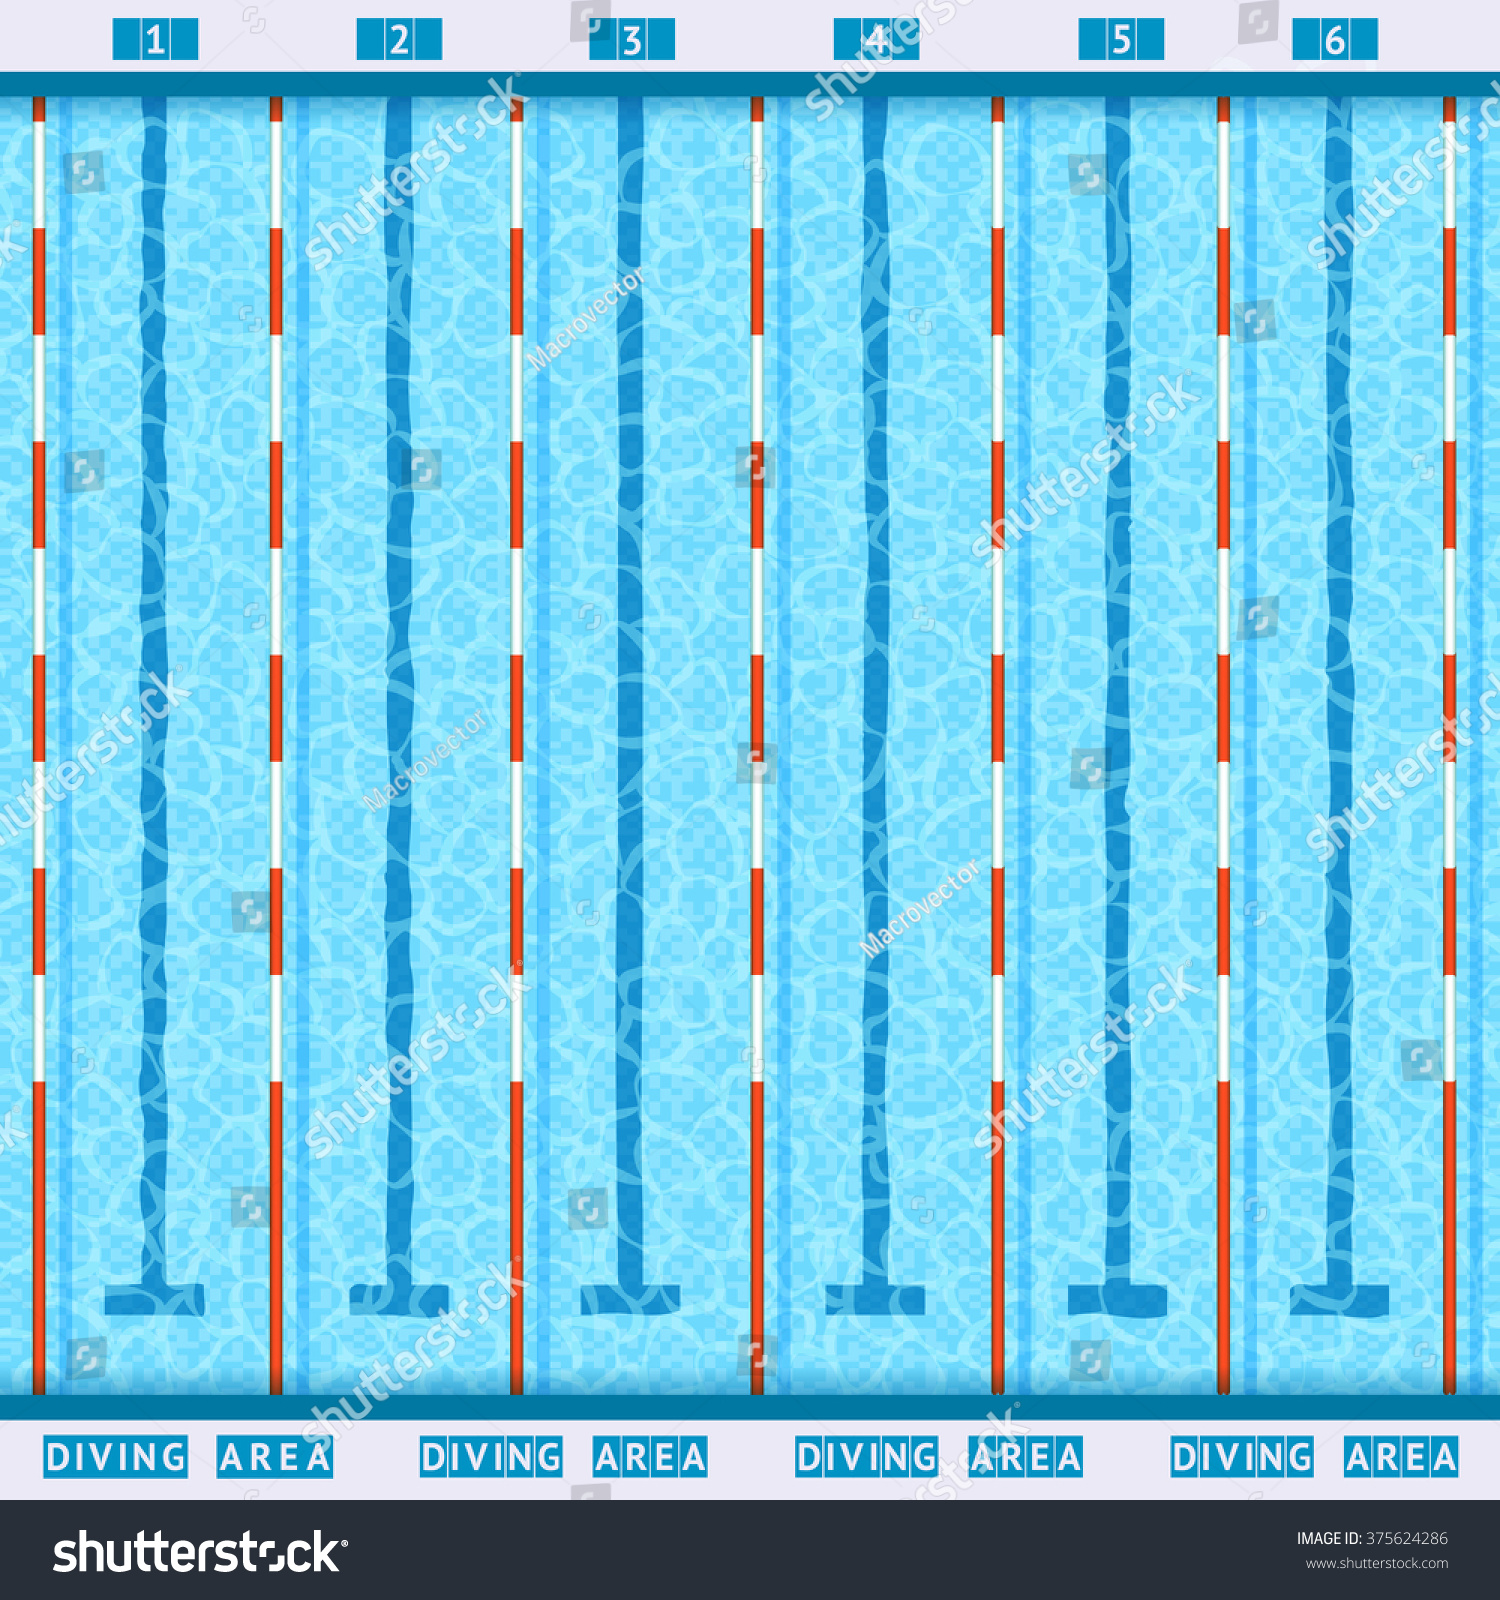 olympic swimming pool deep bath lanes top view flat pictogram with clean transparent blue water vector - Olympic Swimming Pool Top View